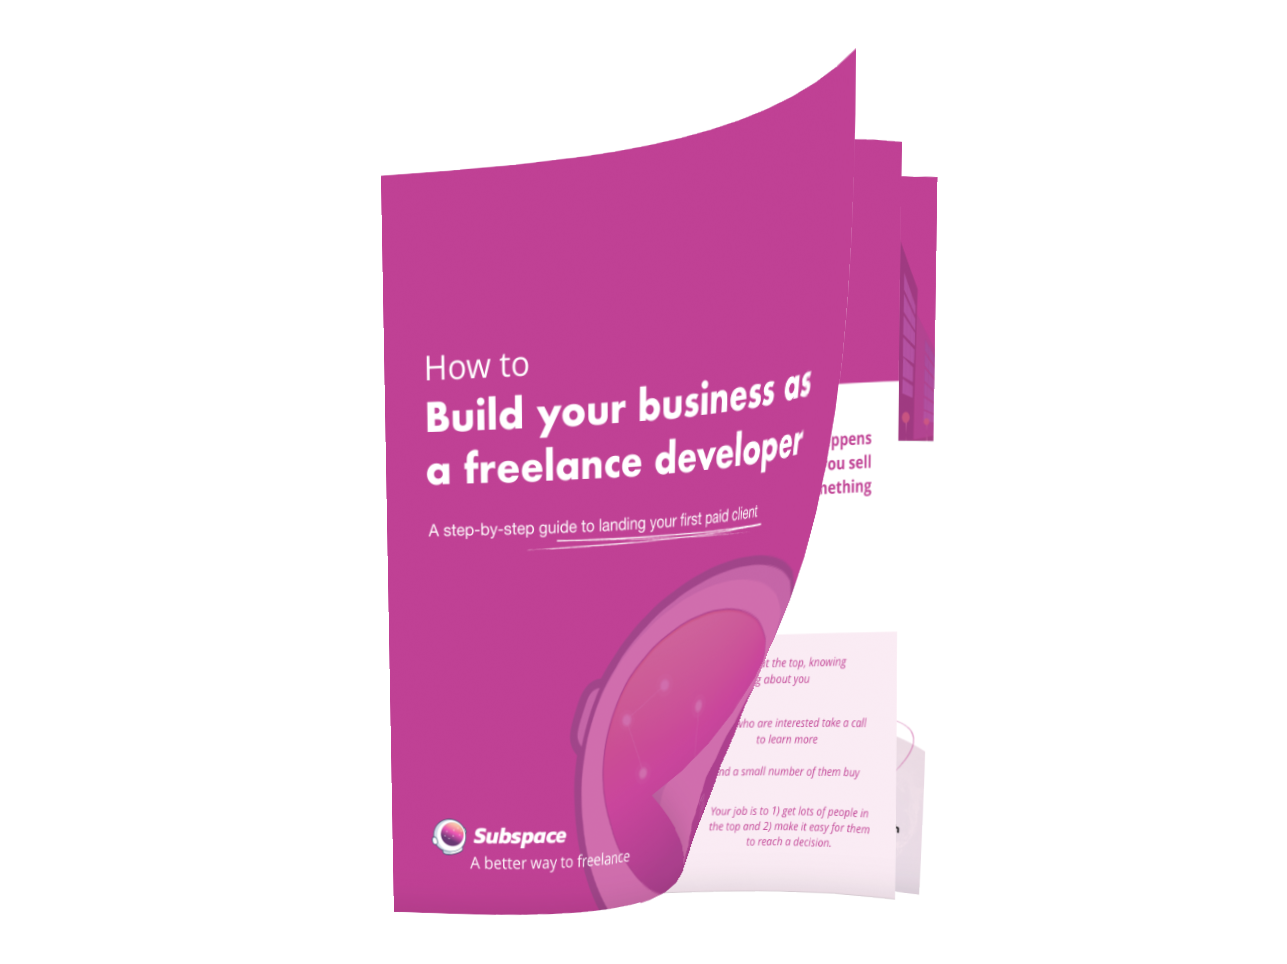 how to build your business as a freelance developer